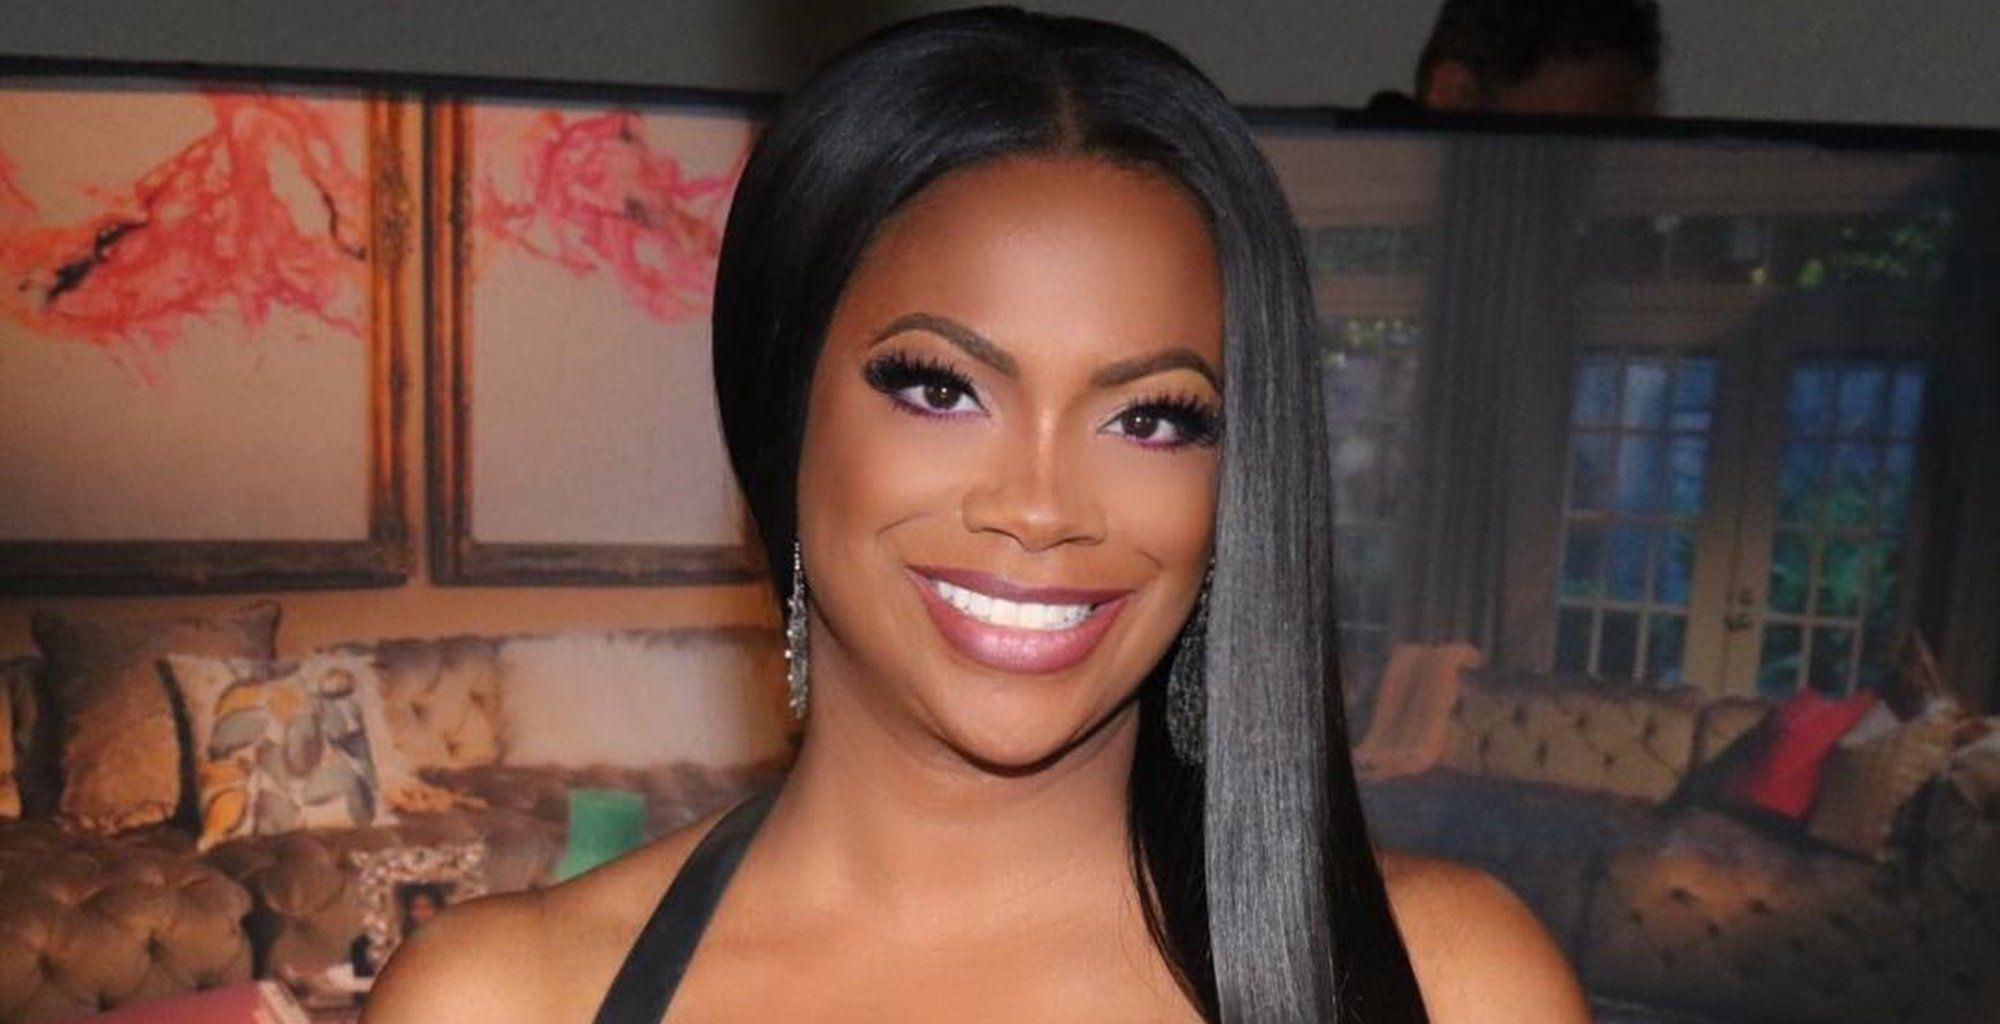 Kandi Burruss Shares Another Round Of Pics From Thailand In Which She's Rocking Her Beach Body - Check Them Out Here